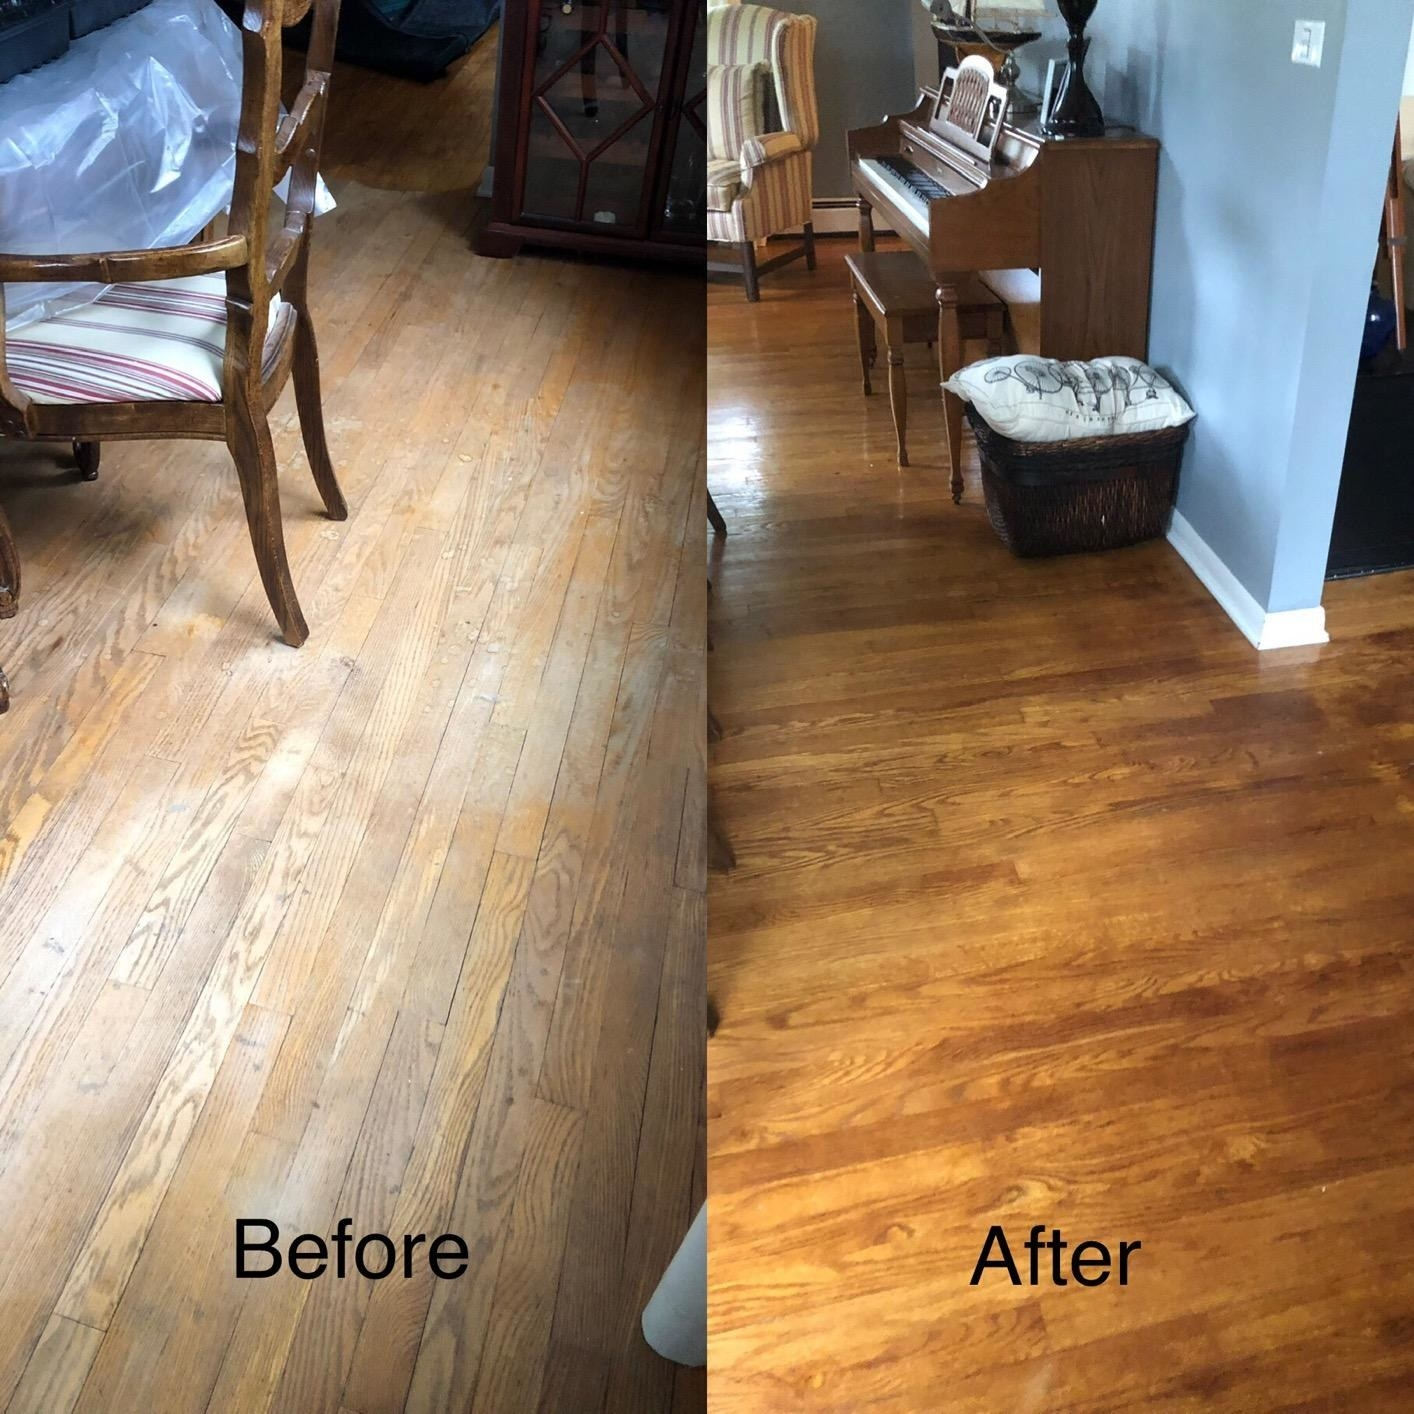 A reviewer showing previously washed out floors looking warm-toned and cleaner after using the product on them